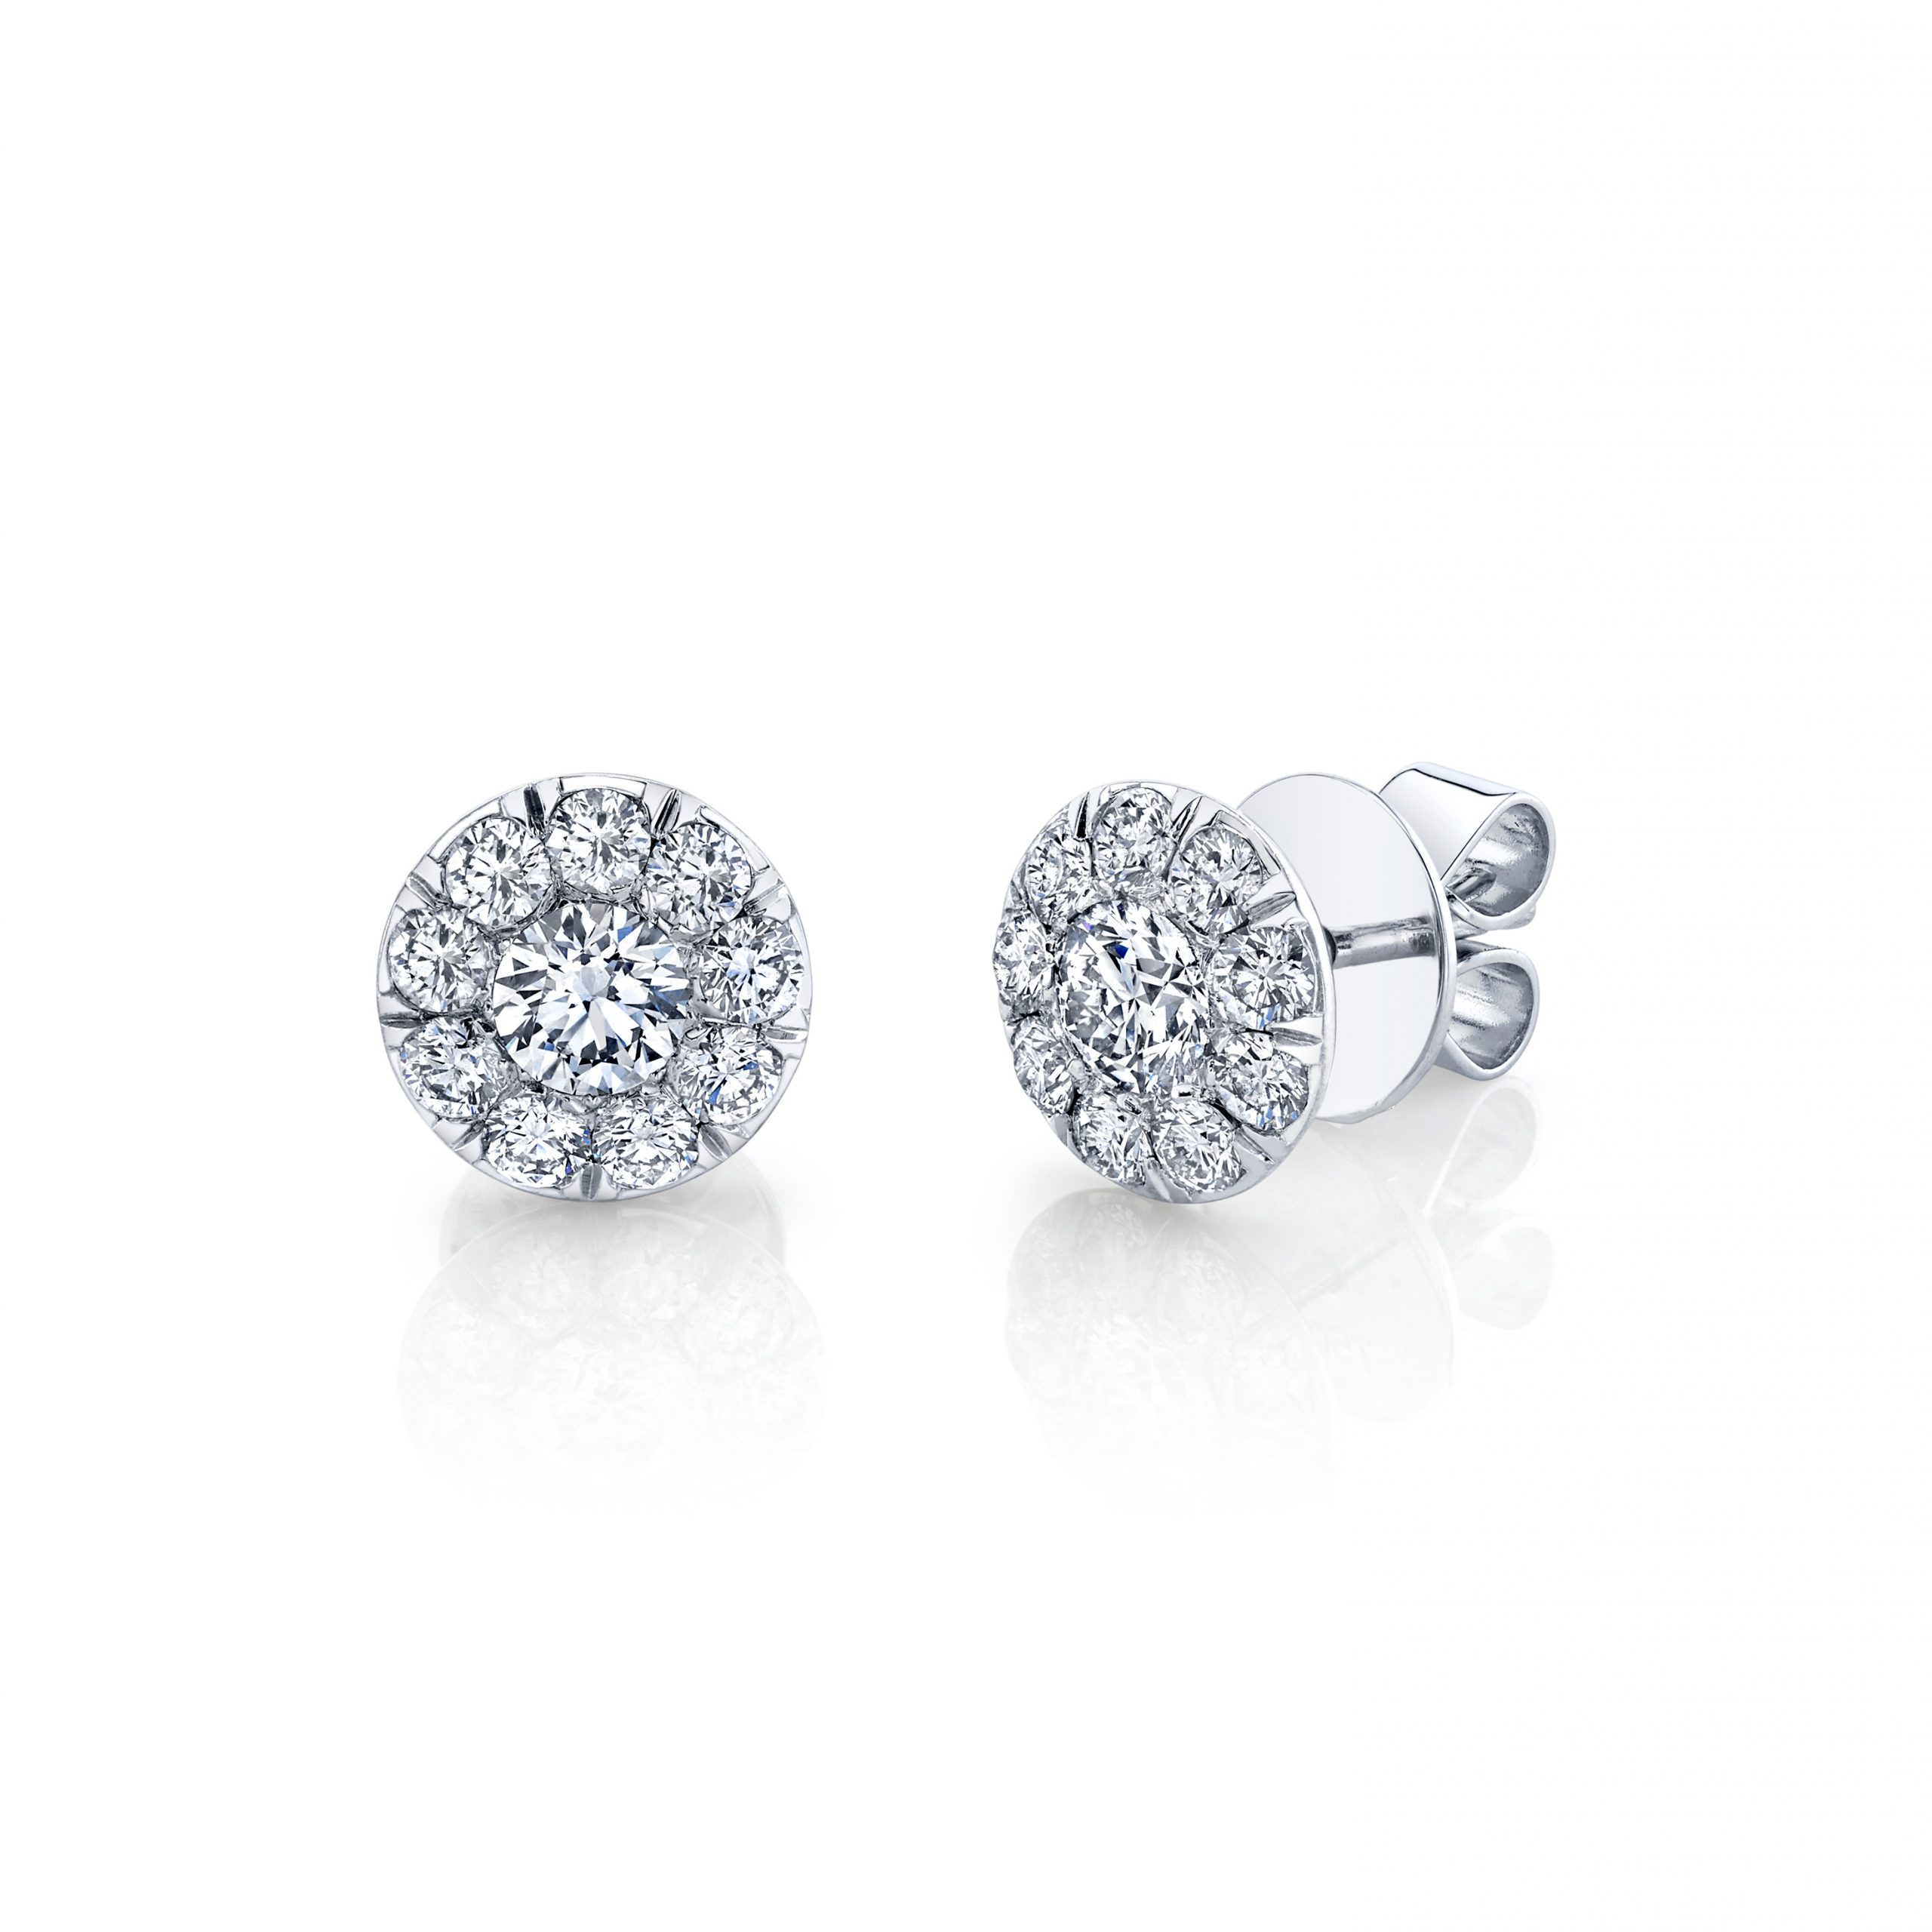 Celine Round Brilliant Seamless Solitaire® Diamond Stud Earrings in 18k White Gold Side View by Oui by Jean Dousset